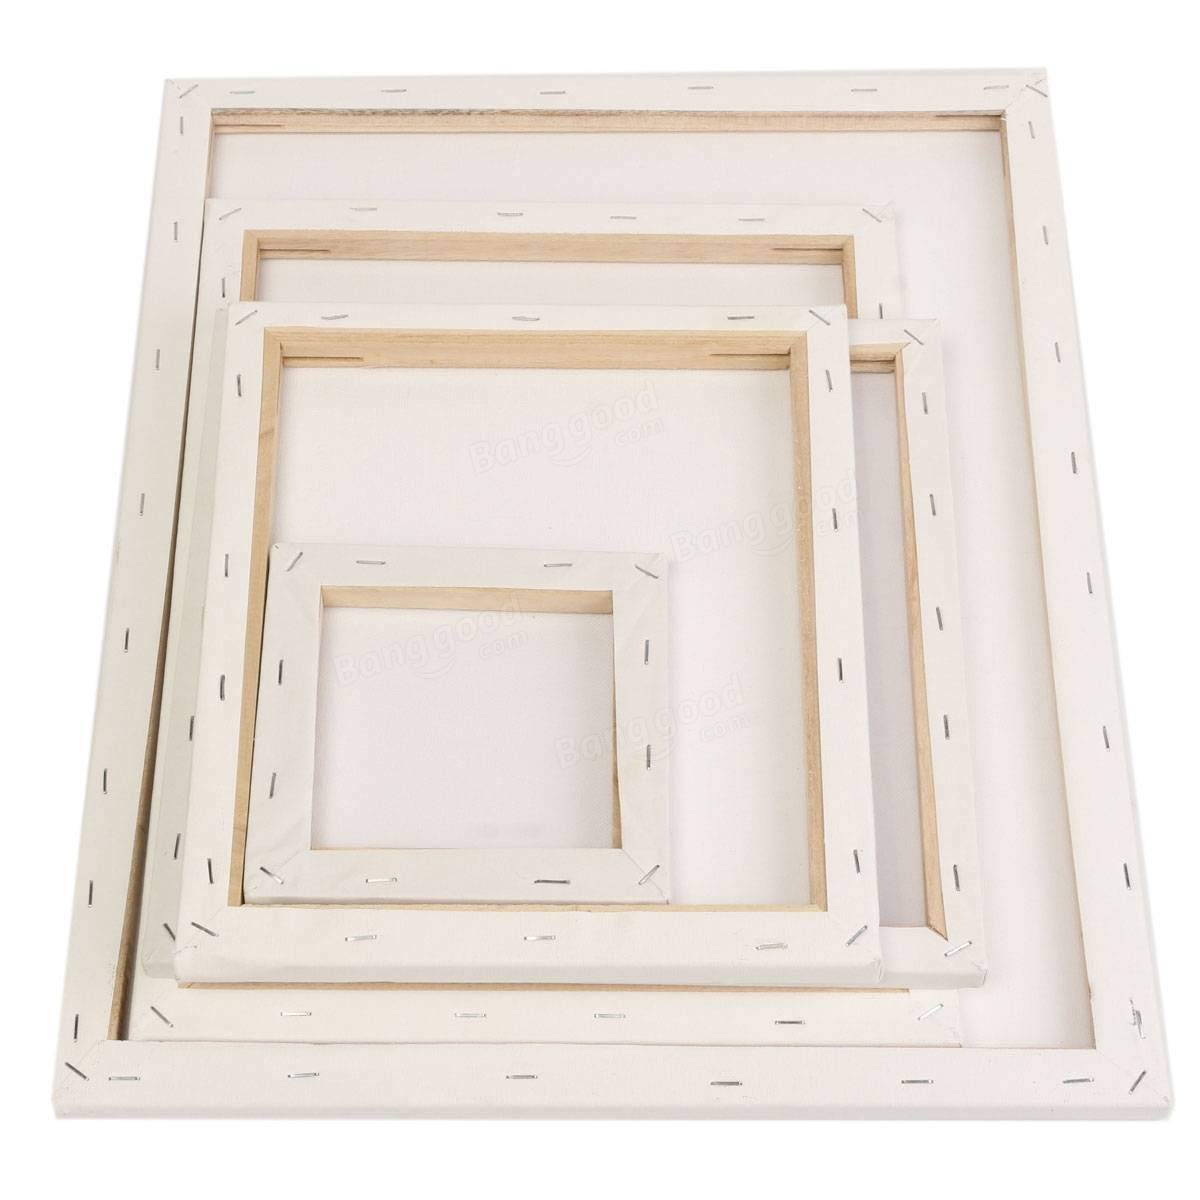 Cheap Canvas Frame, find Canvas Frame deals on line at Alibaba.com